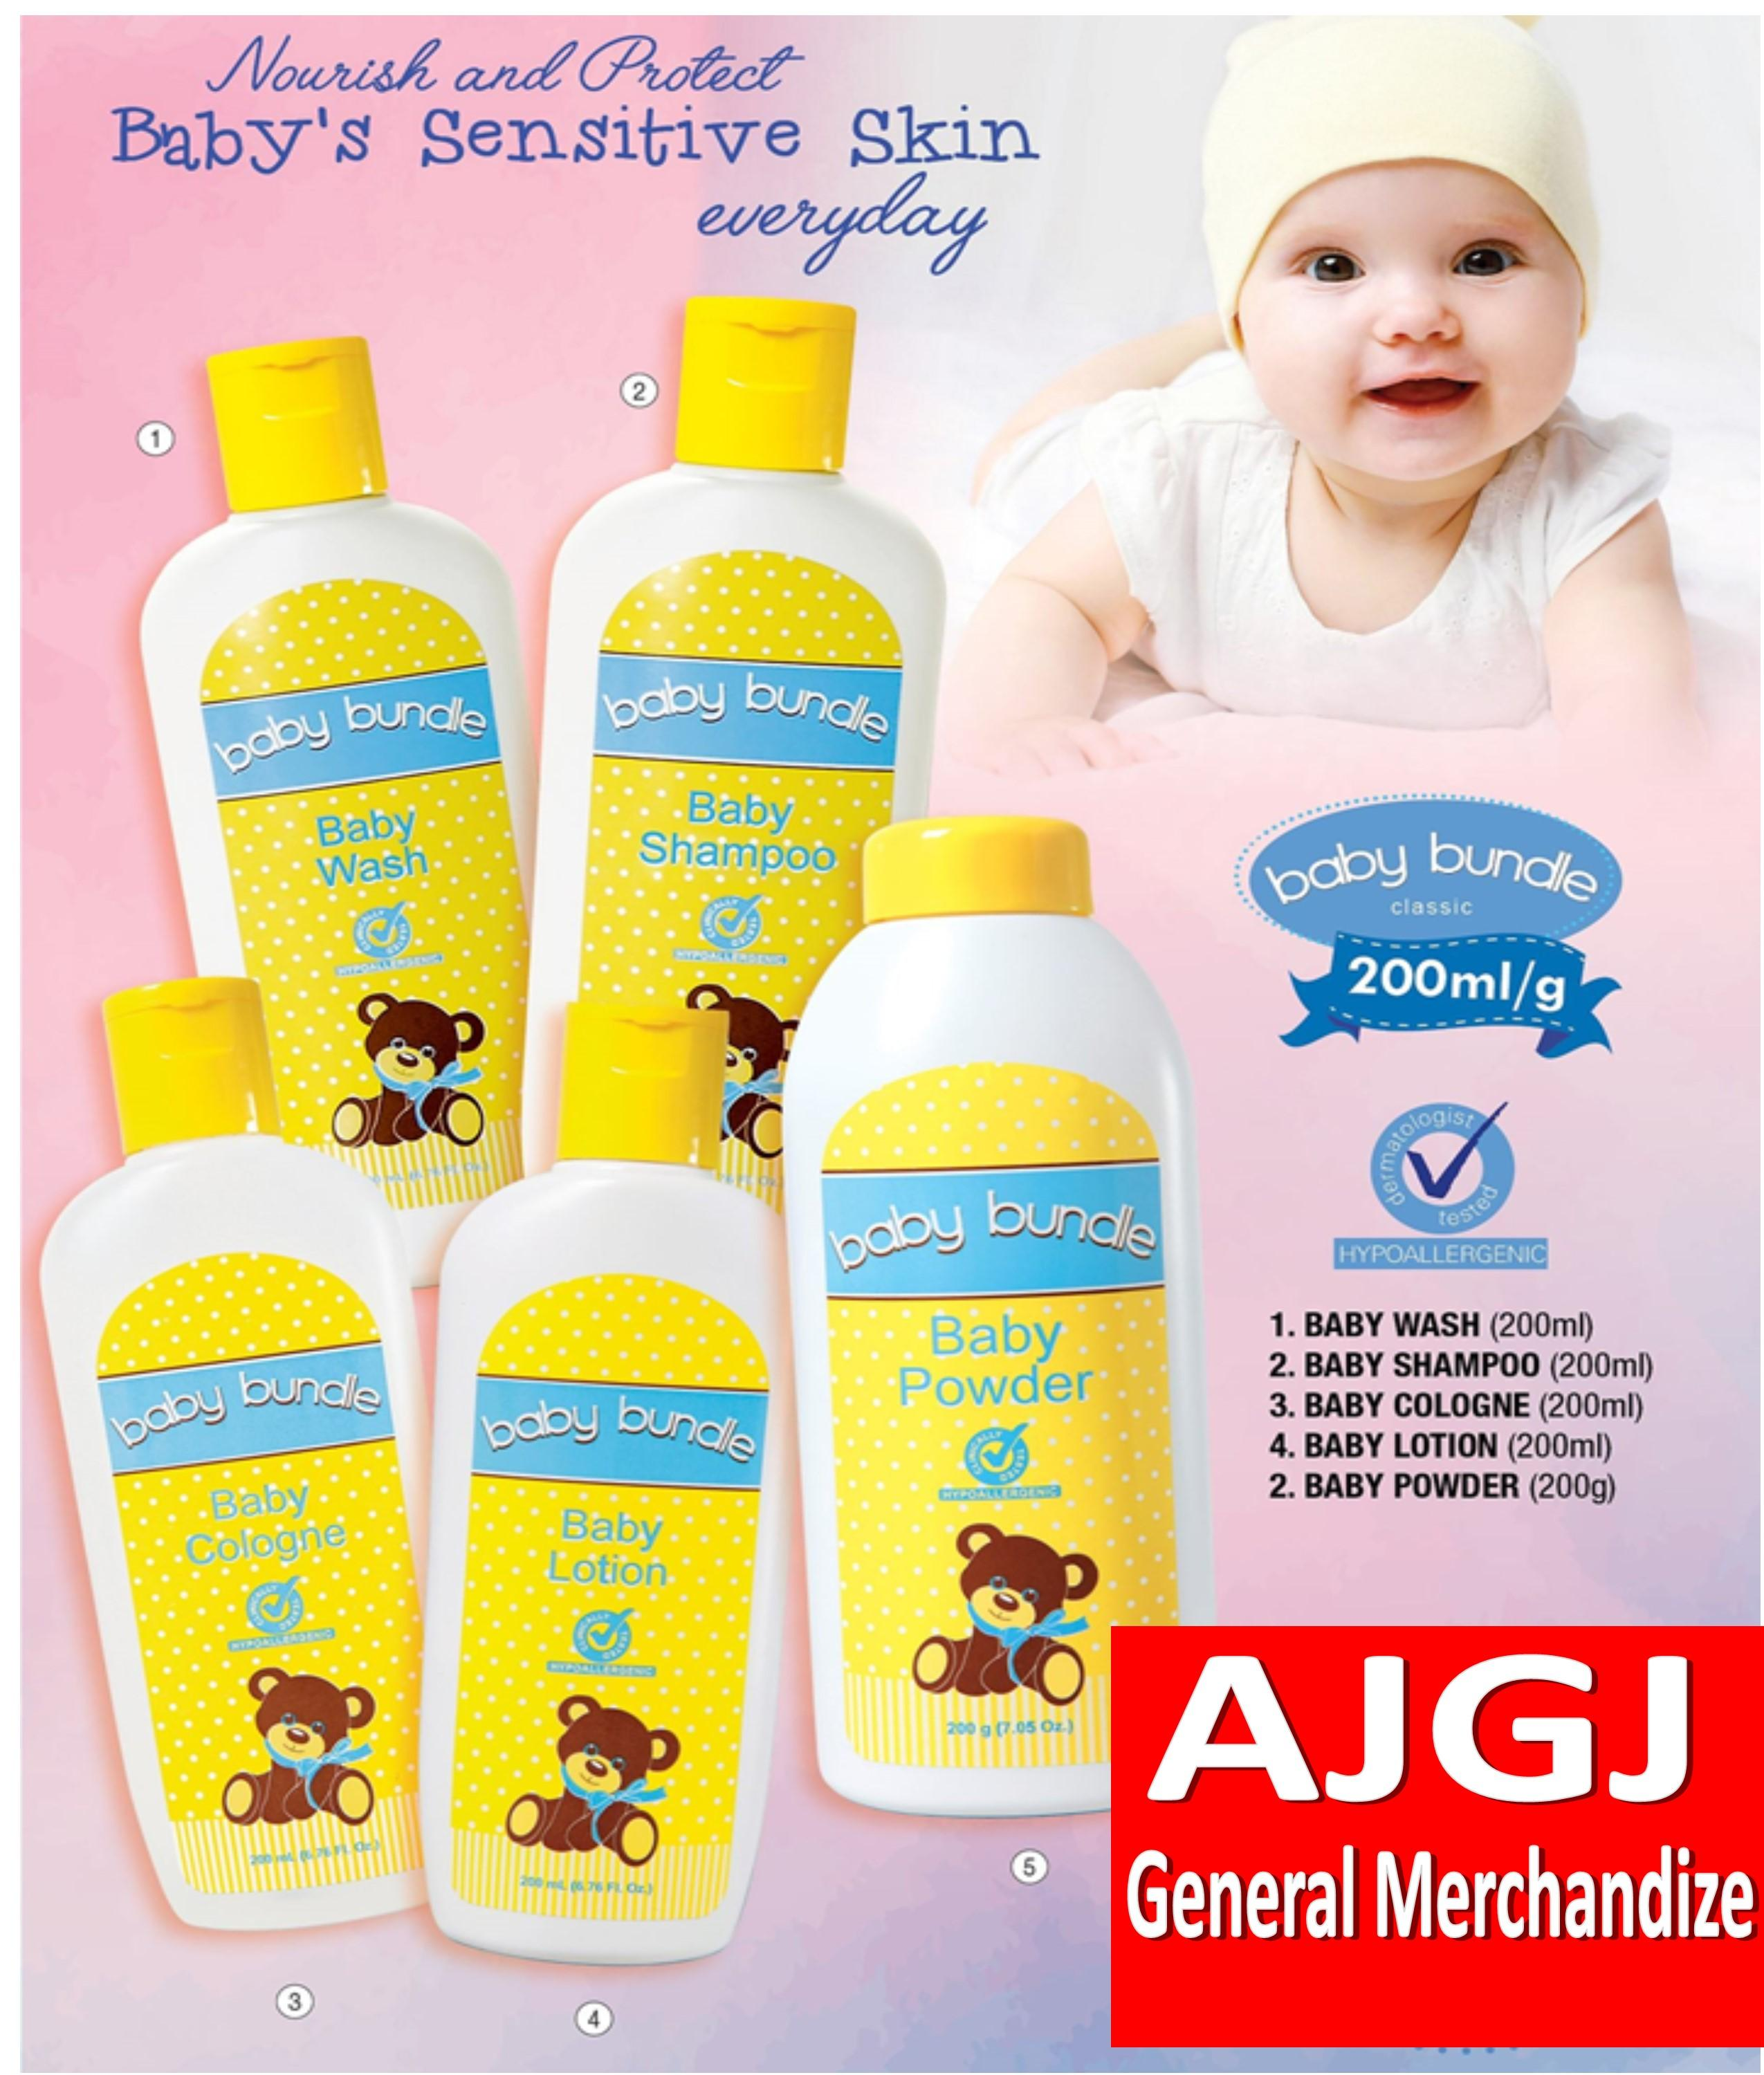 Baby Bundle Classic Comes With 200 Ml Baby Wash, Lotion, Shampoo, Cologne And Powder By Ajgj Gen Mdse.